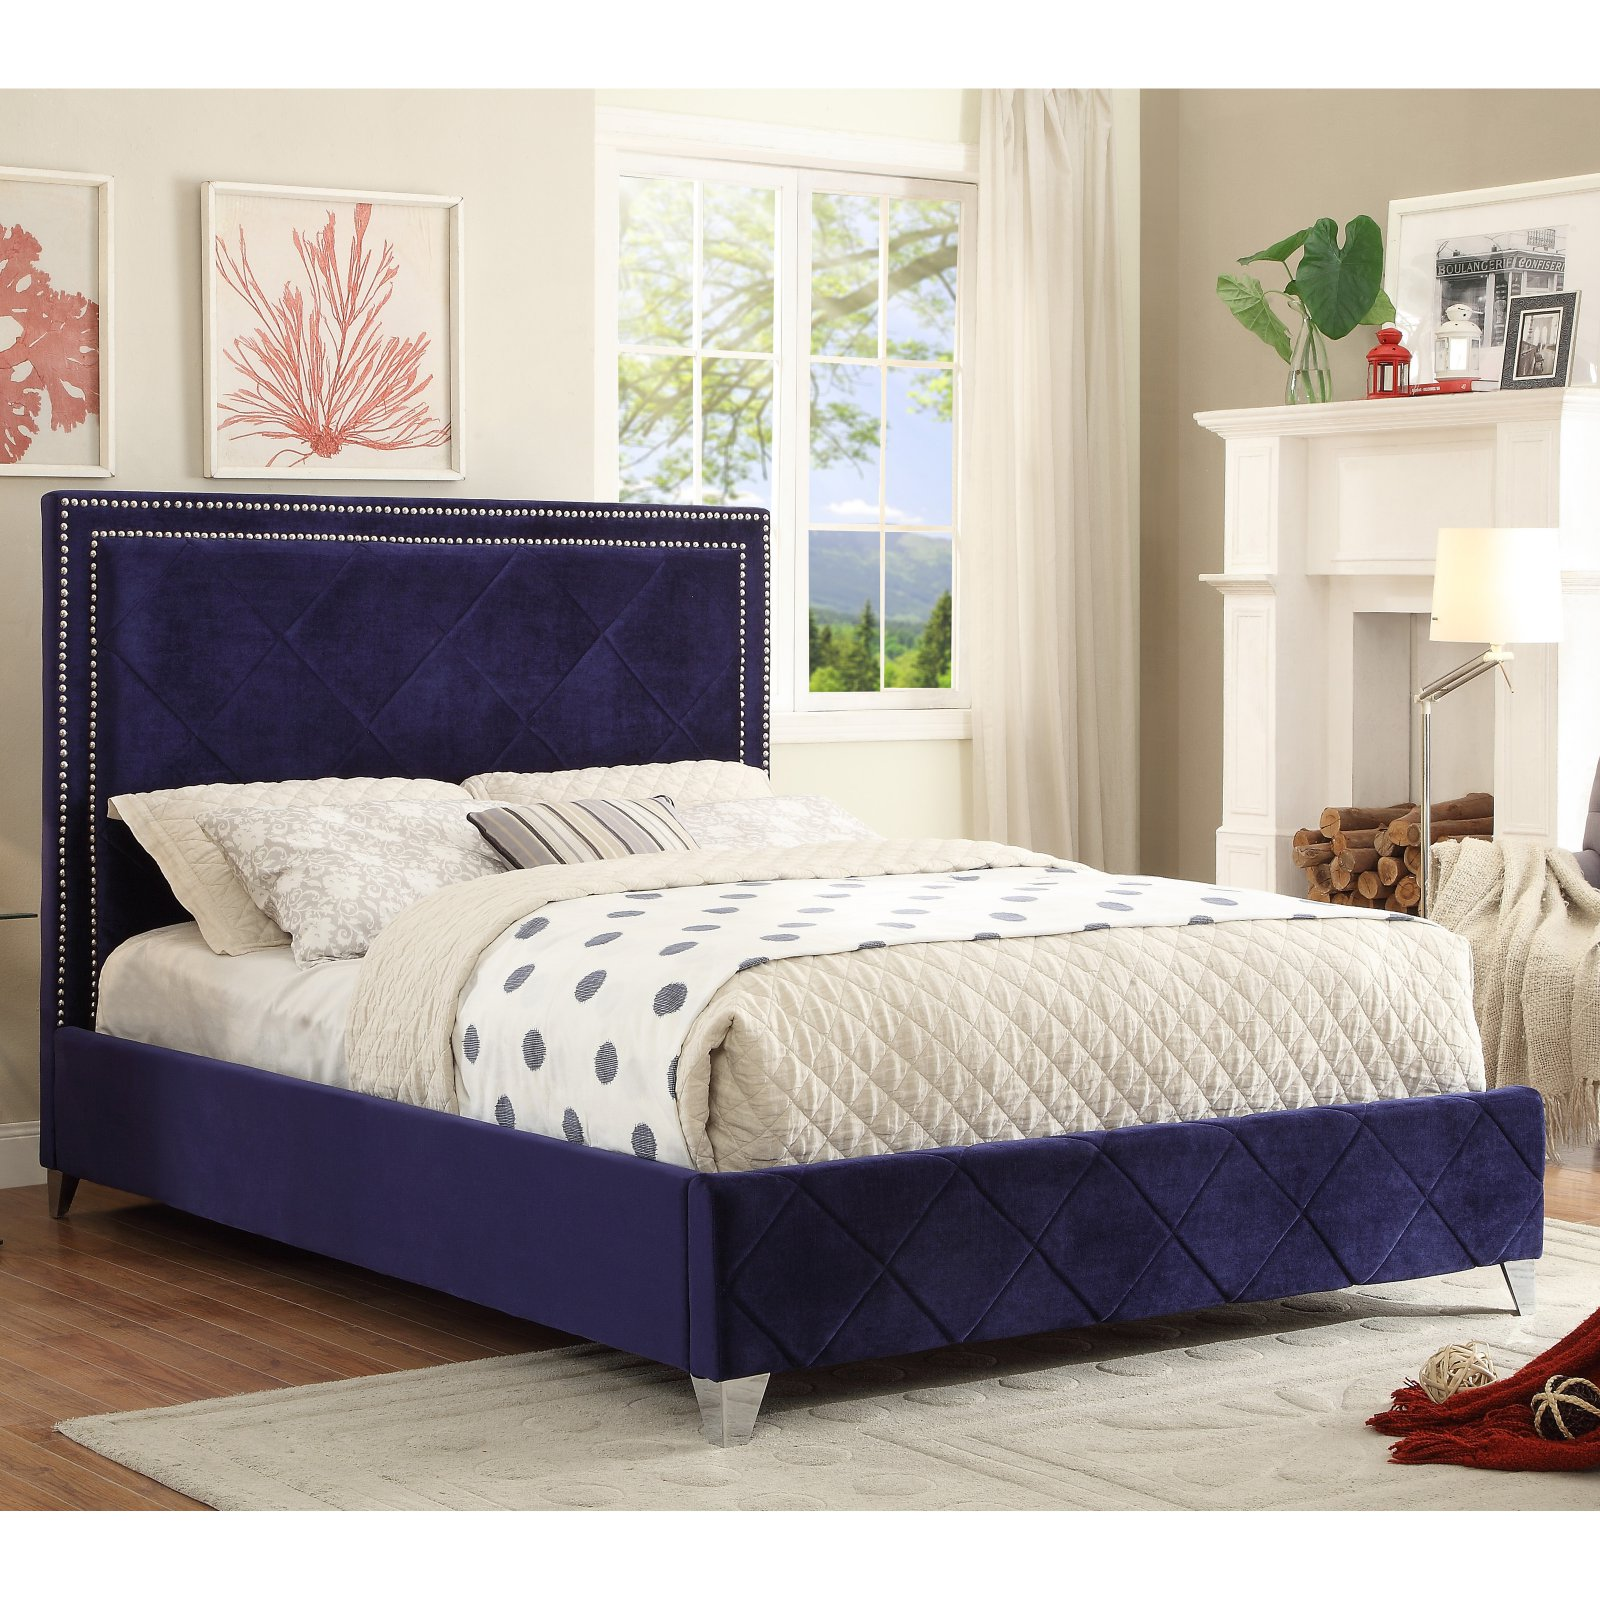 Meridian Hampton Velvet Upholstered Bed